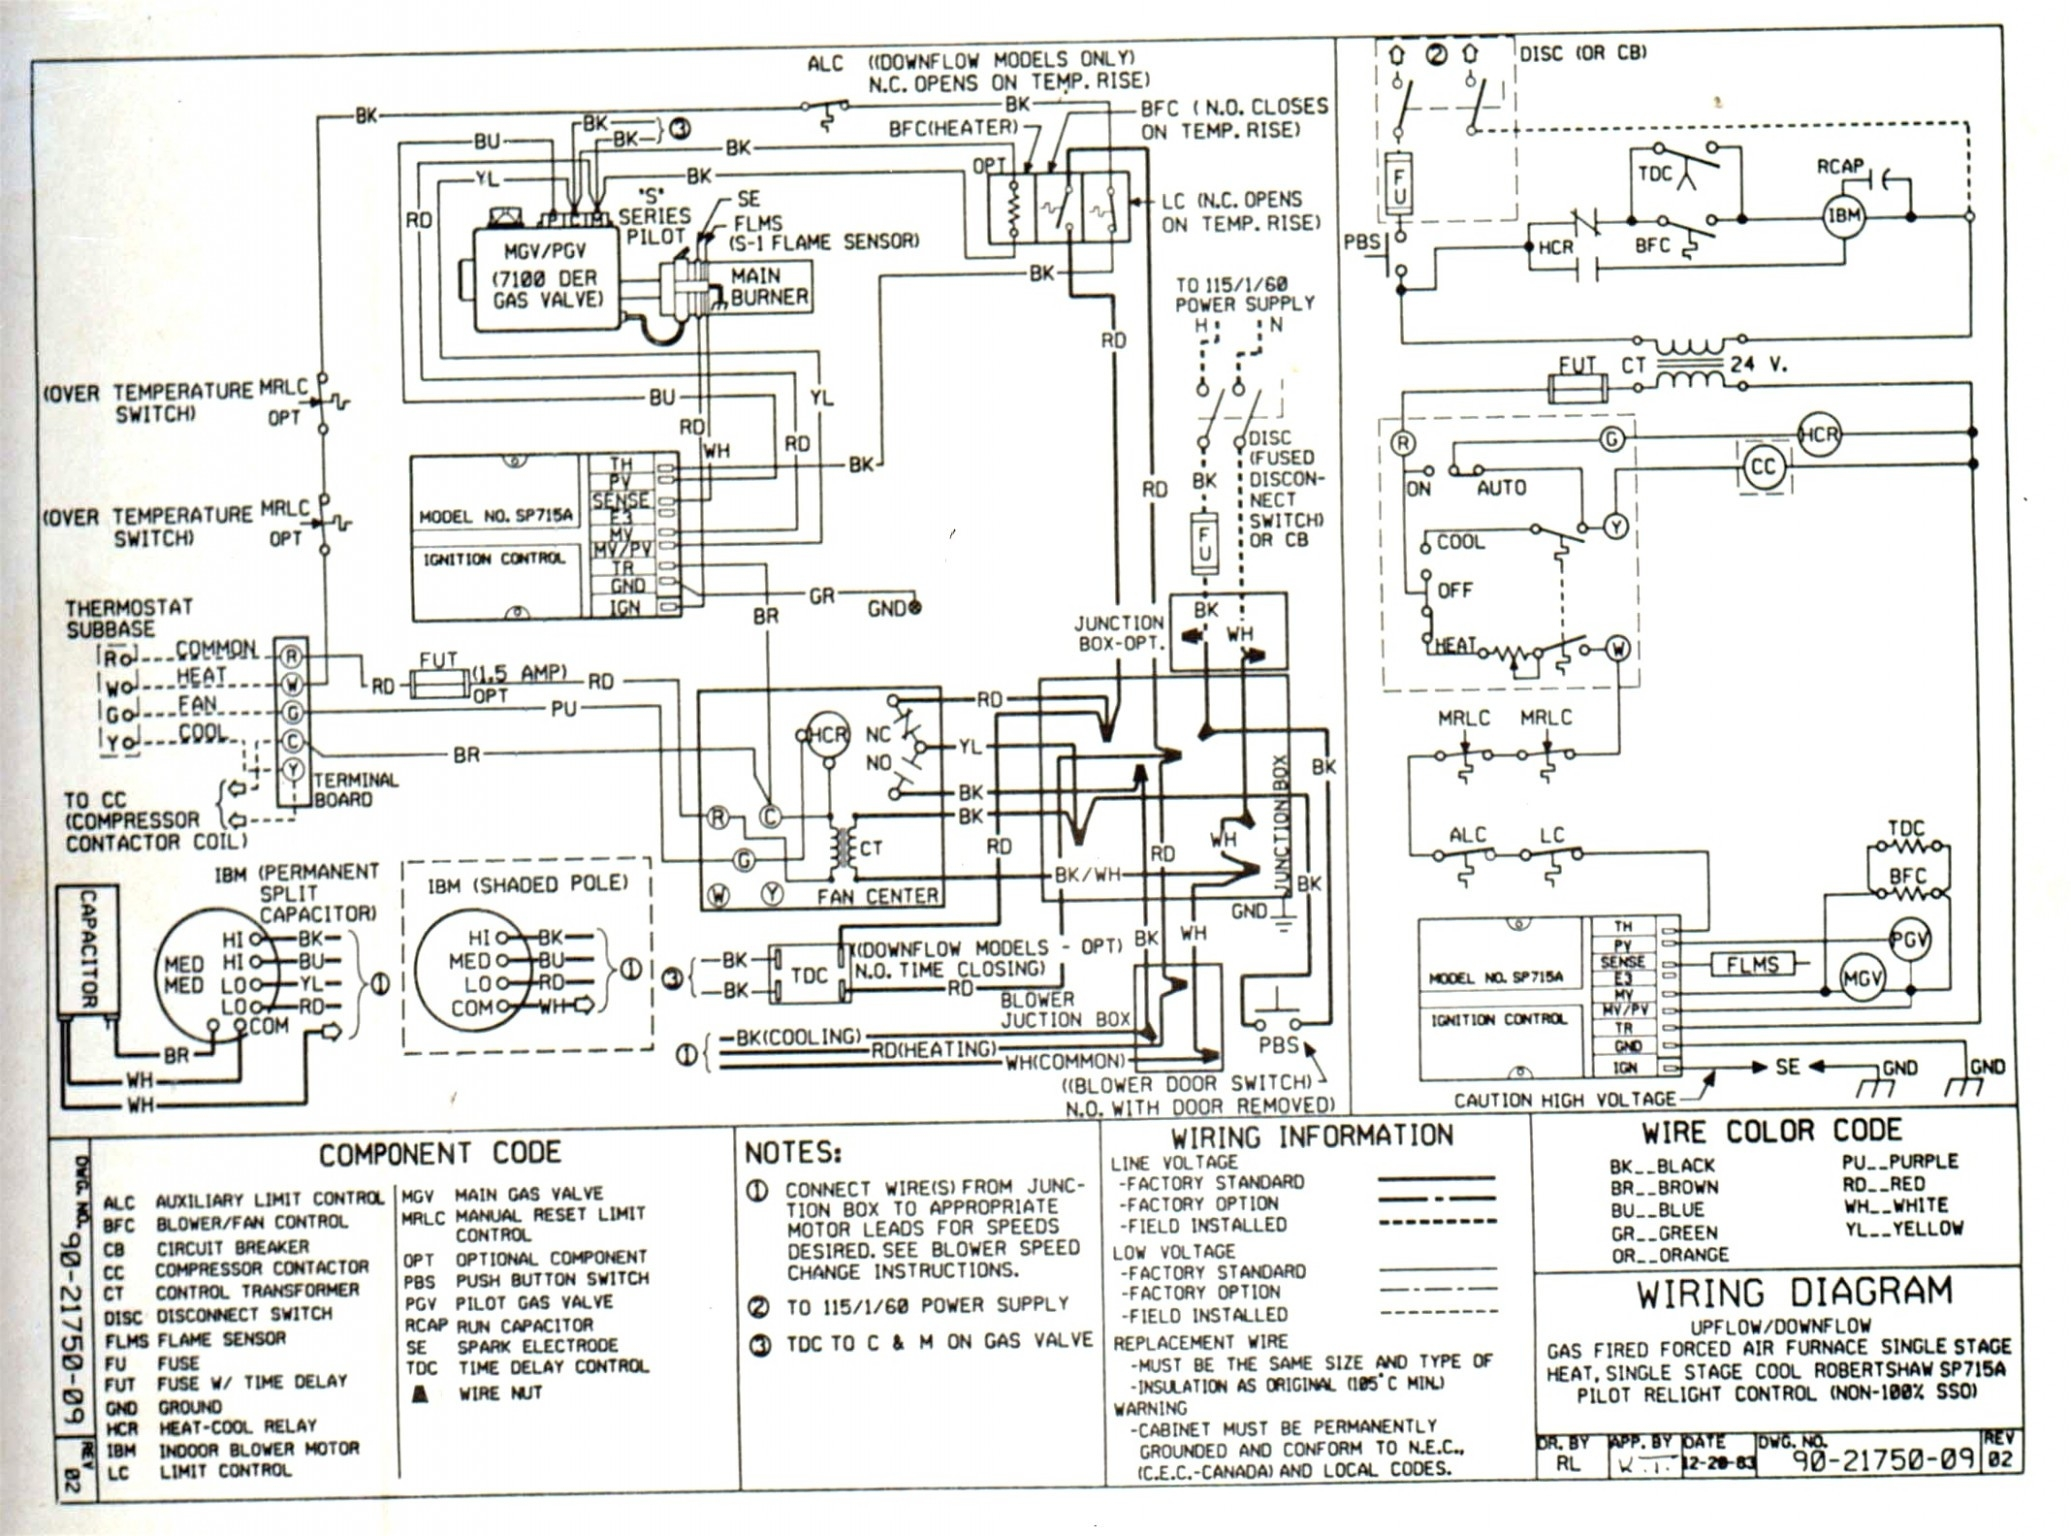 intertherm e2eb 015ha wiring diagram | free wiring diagram nordyne e2eb 012ha wiring diagram #8